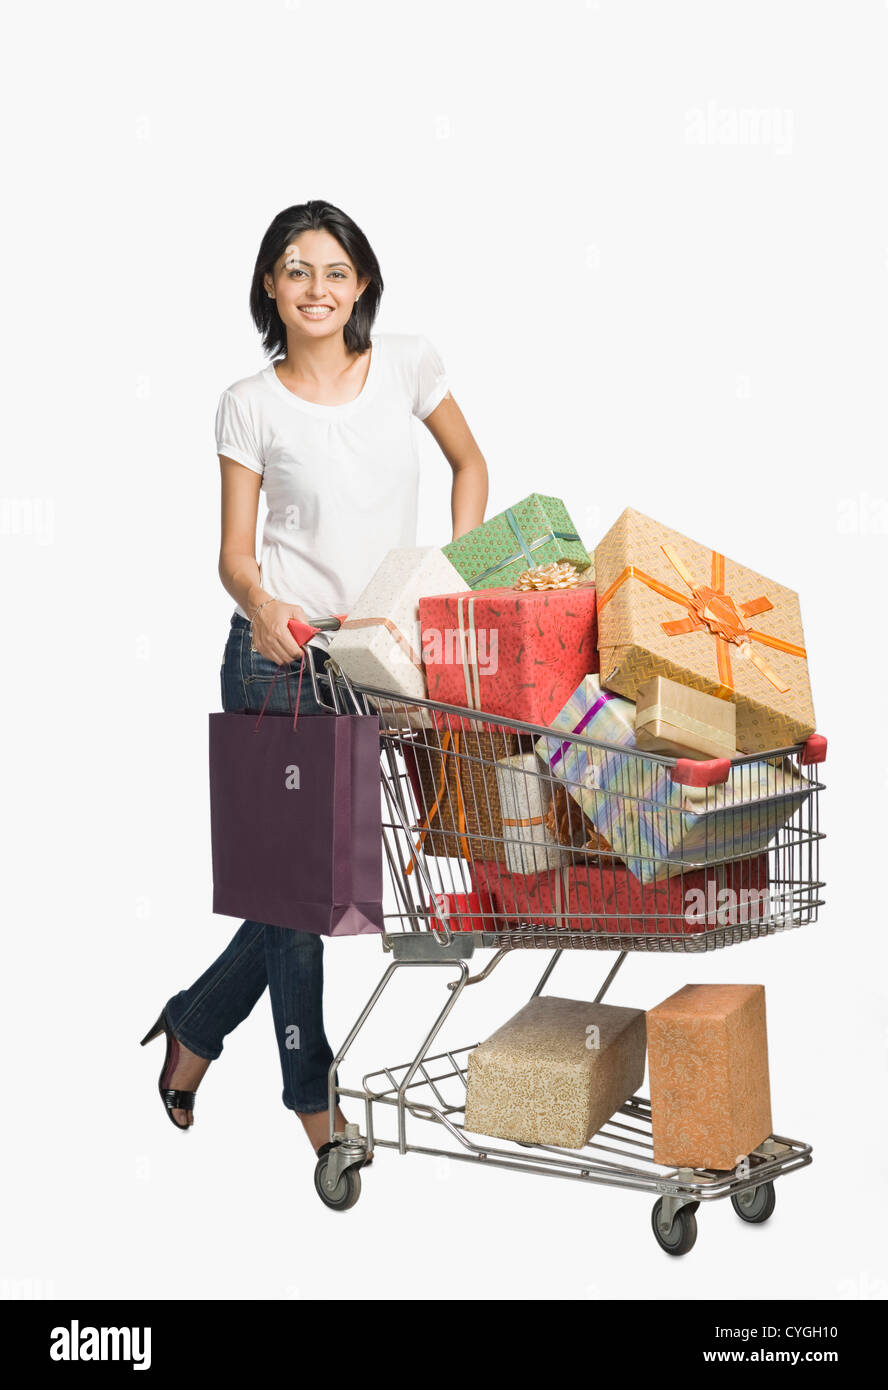 Woman pushing a shopping cart of gifts - Stock Image